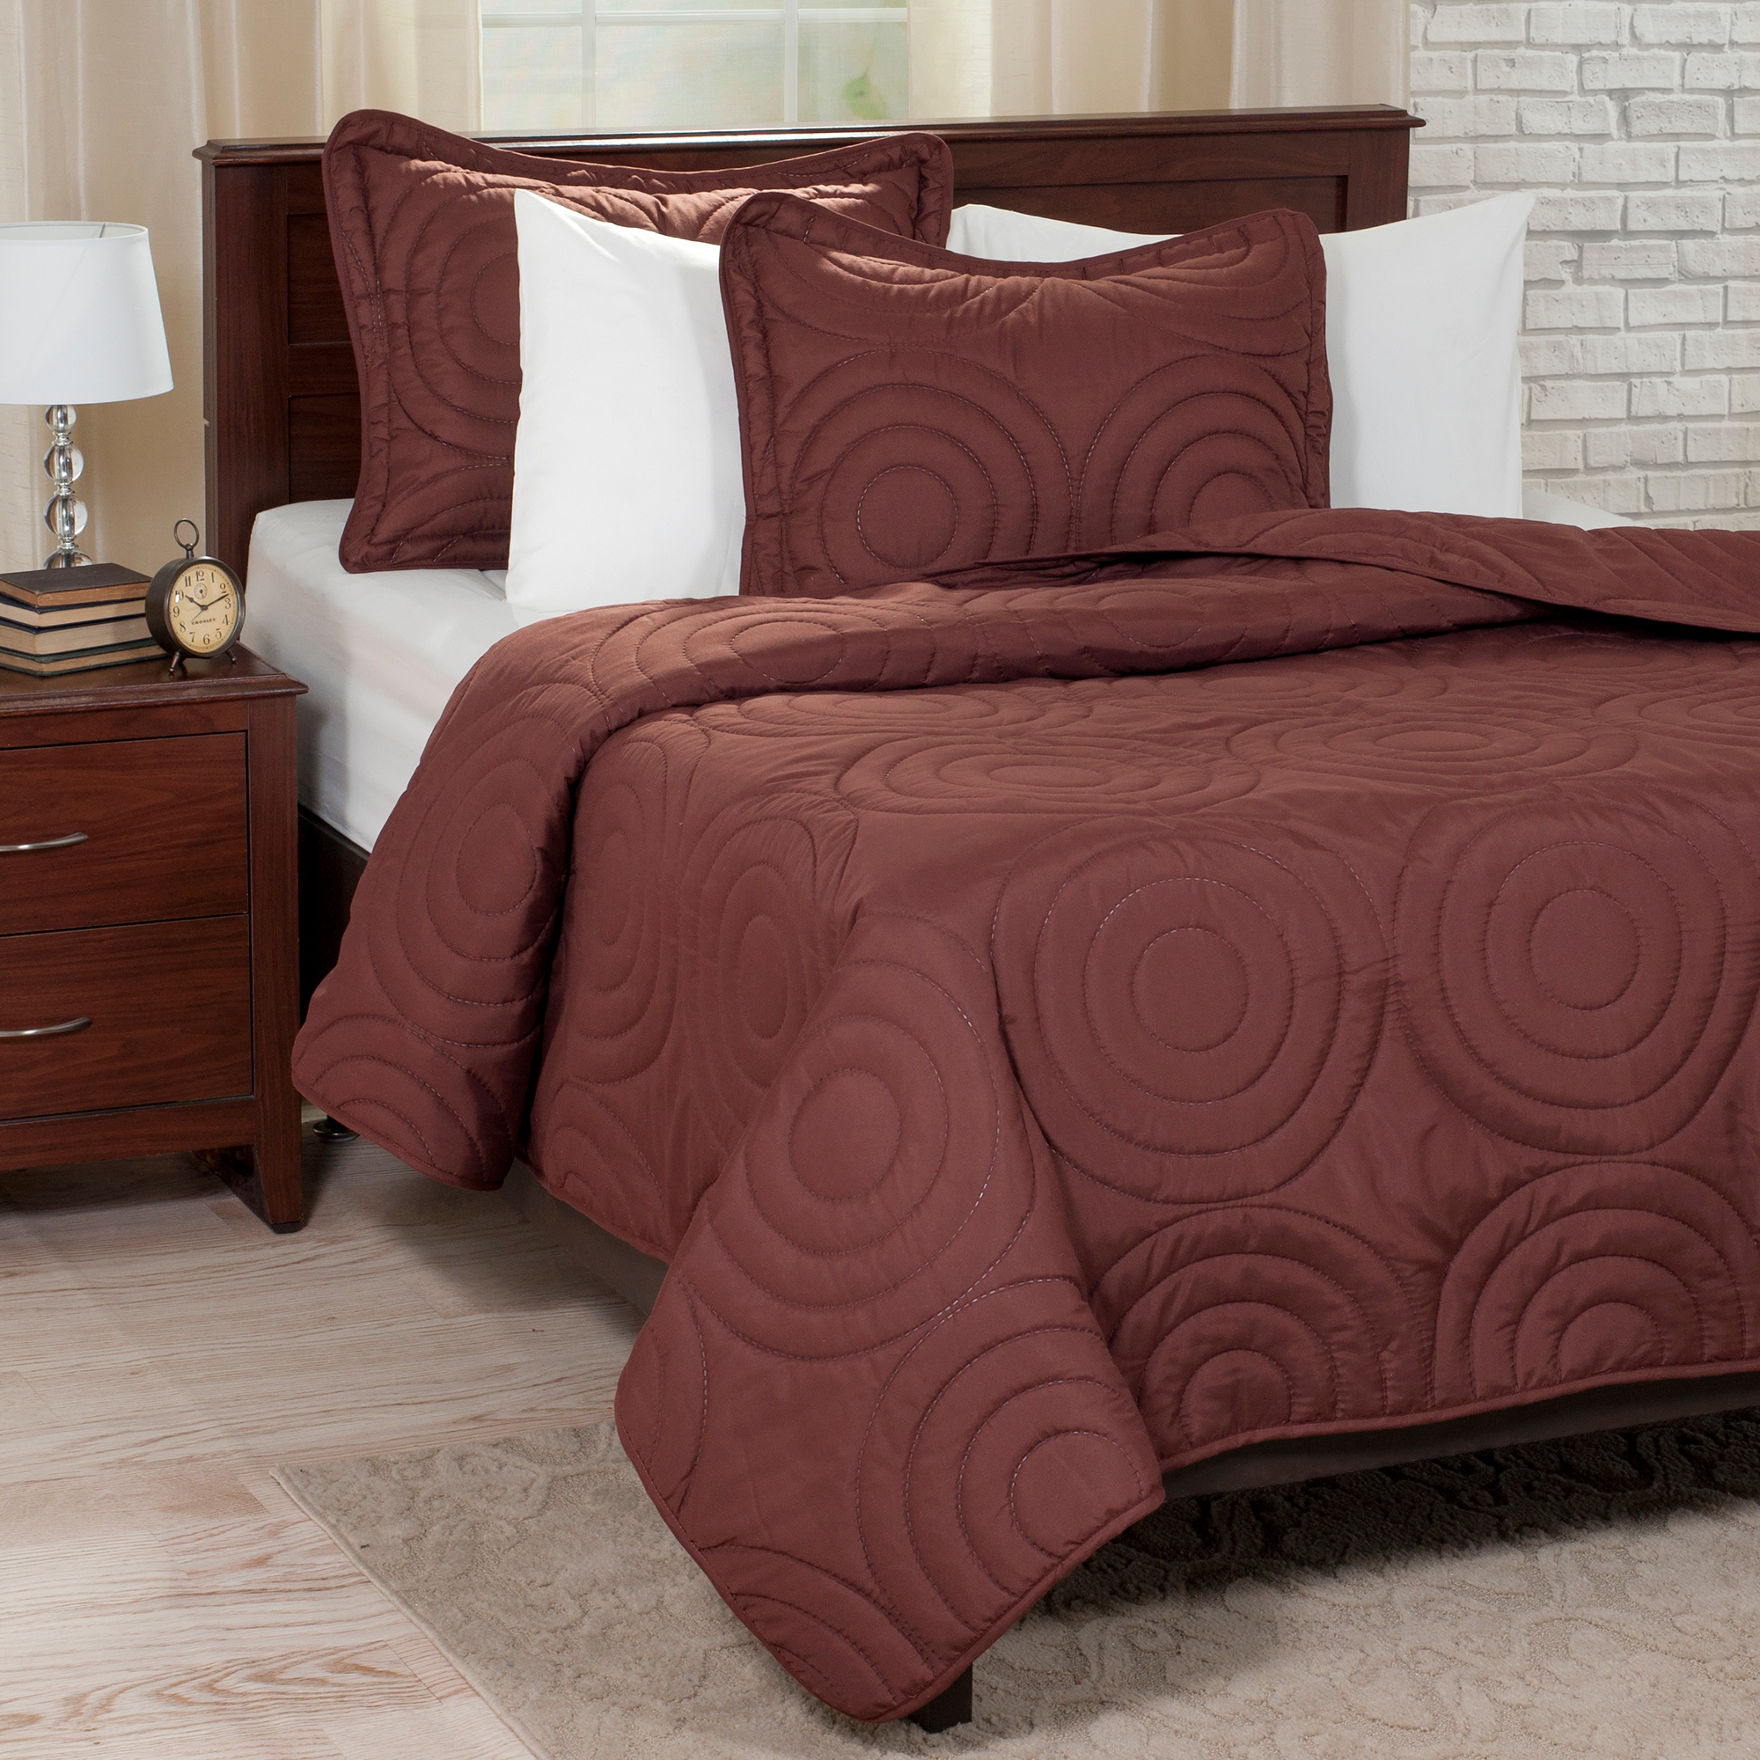 Lavish Home Chocolate Quilts & Quilt Sets